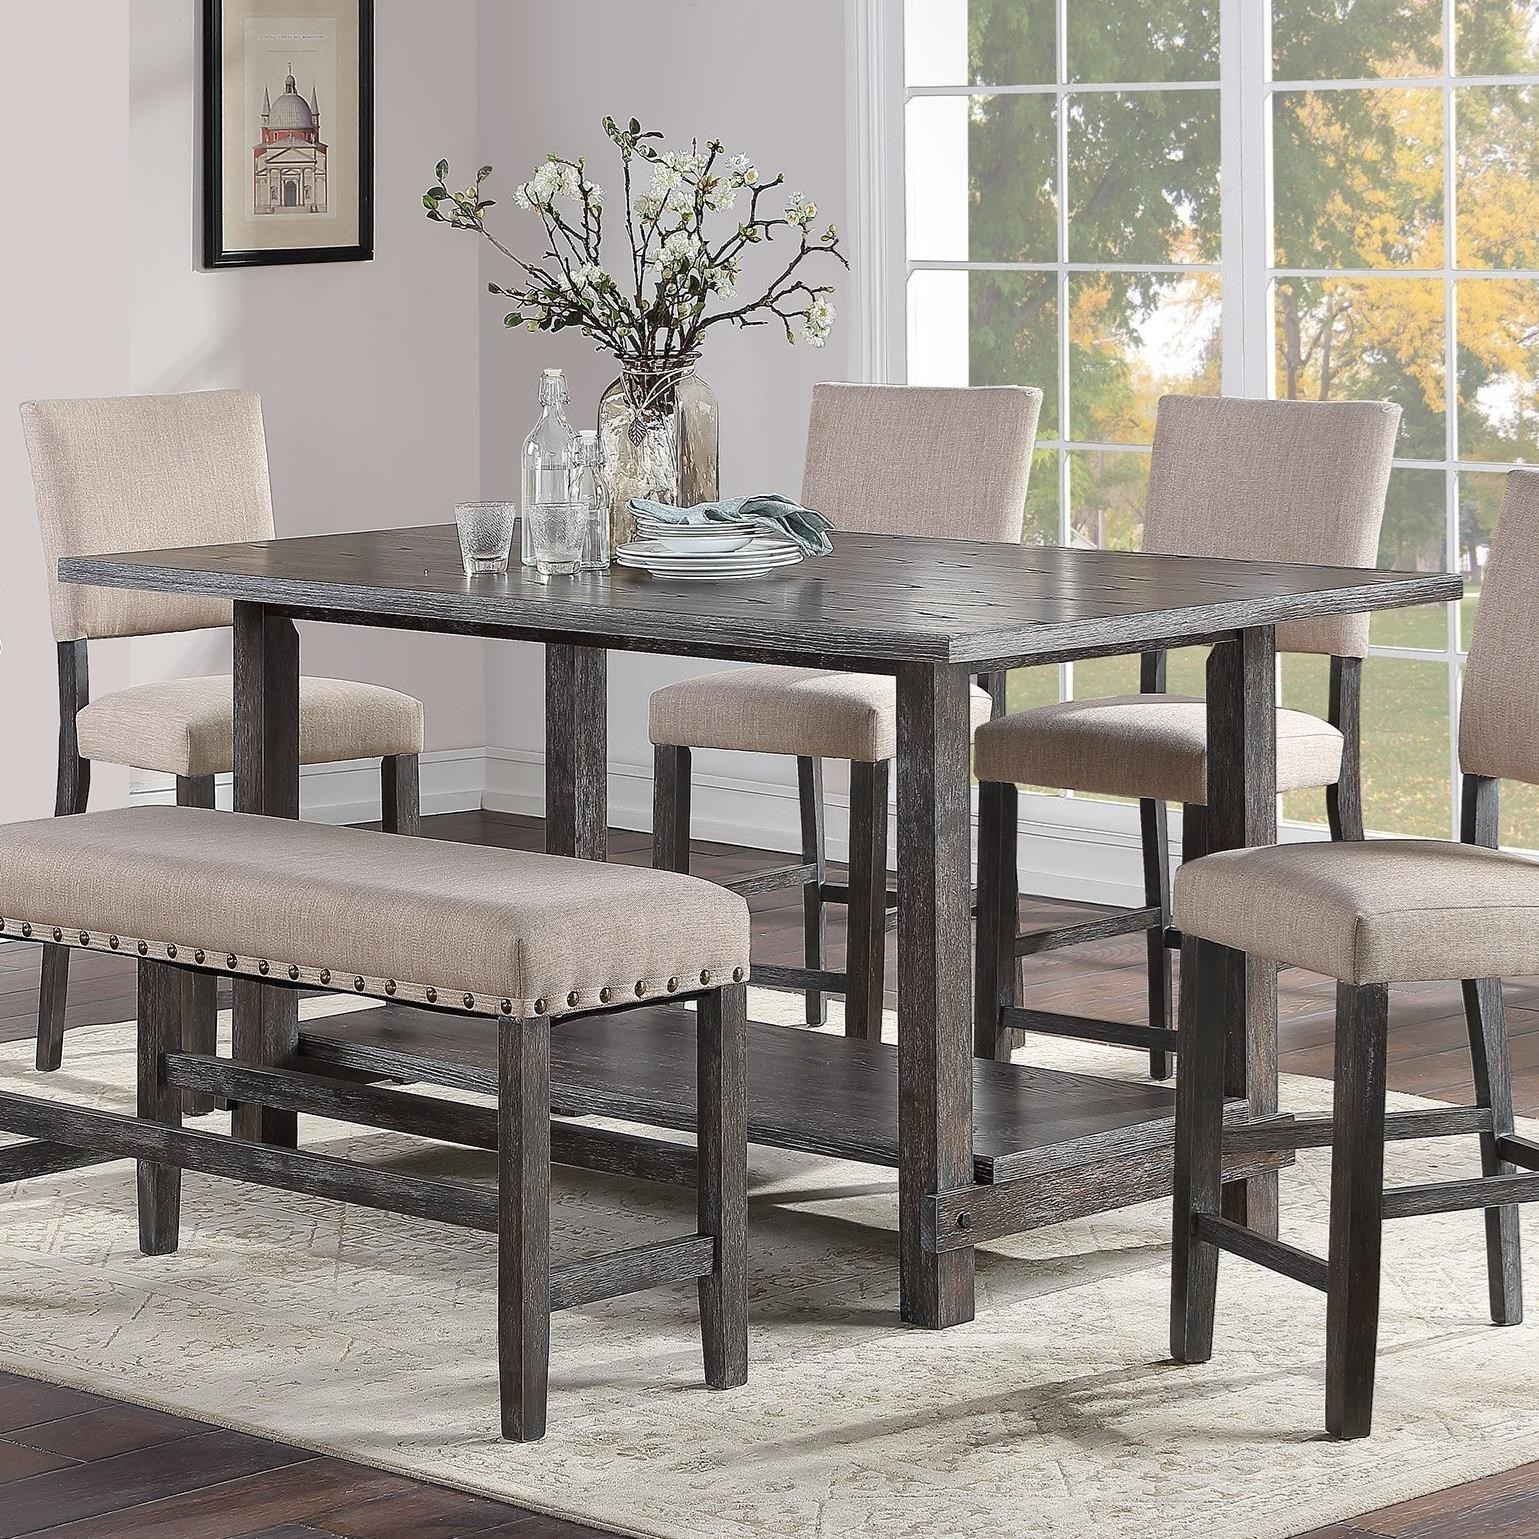 Aubrun Charcoal Counter Height Dining Table by Standard Furniture at Beds N Stuff